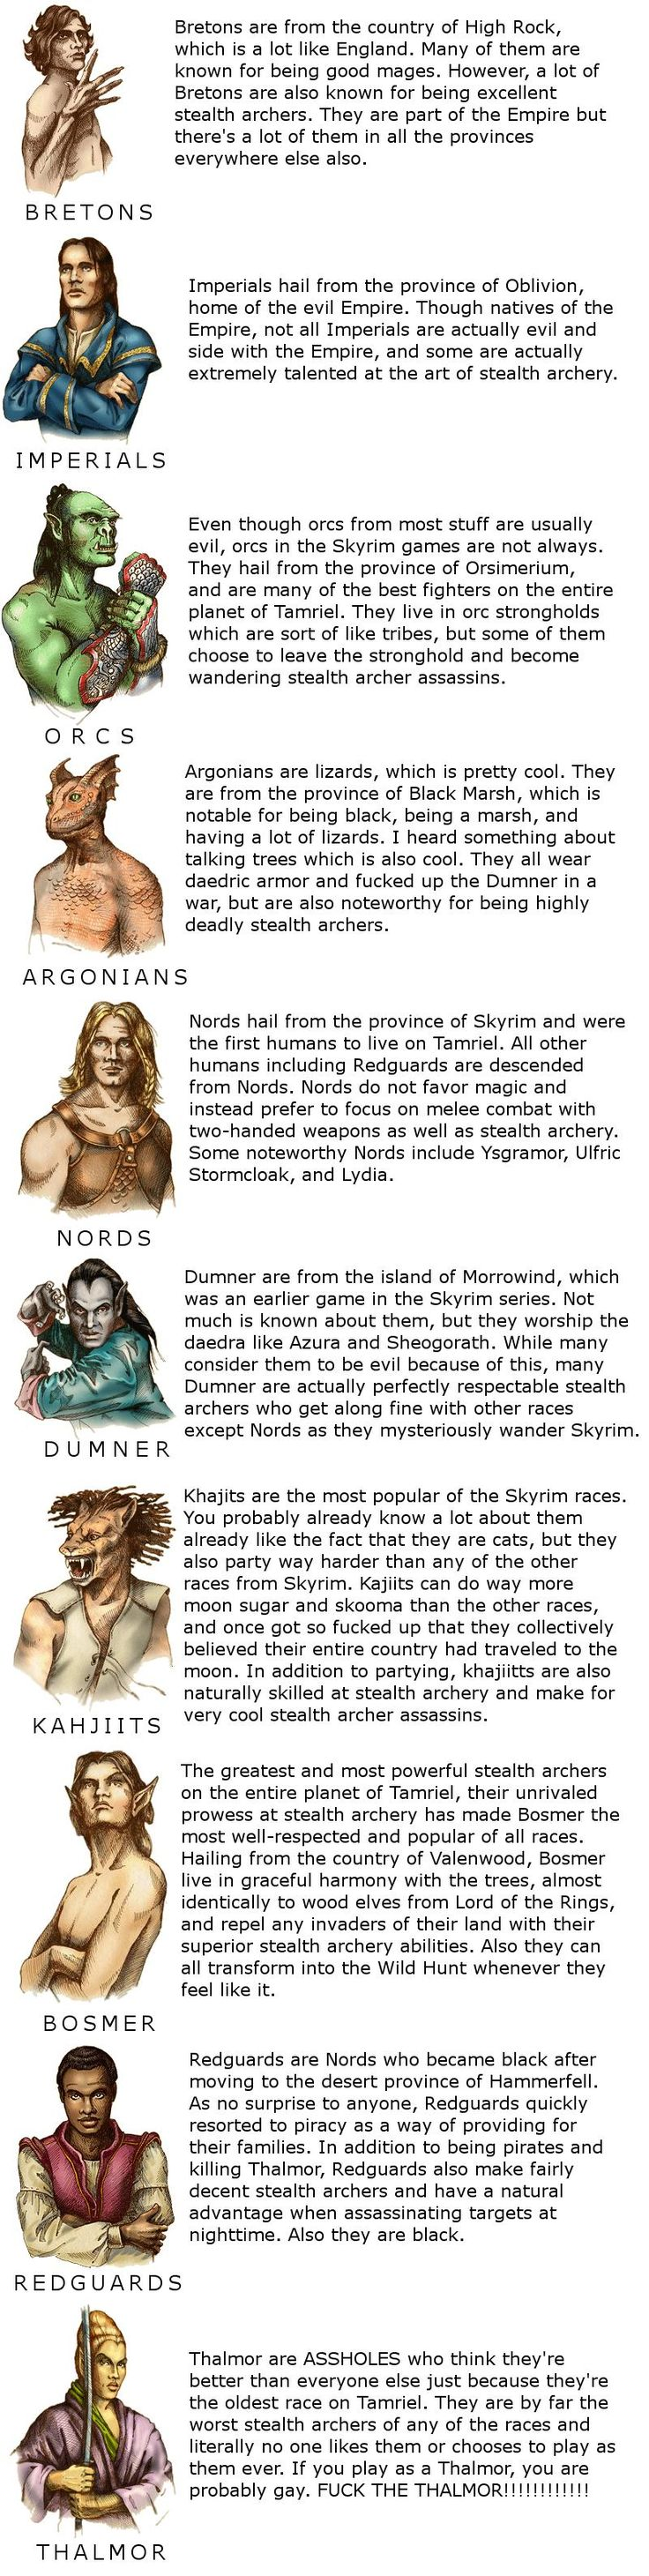 A quick guide to the Elder Scrolls races